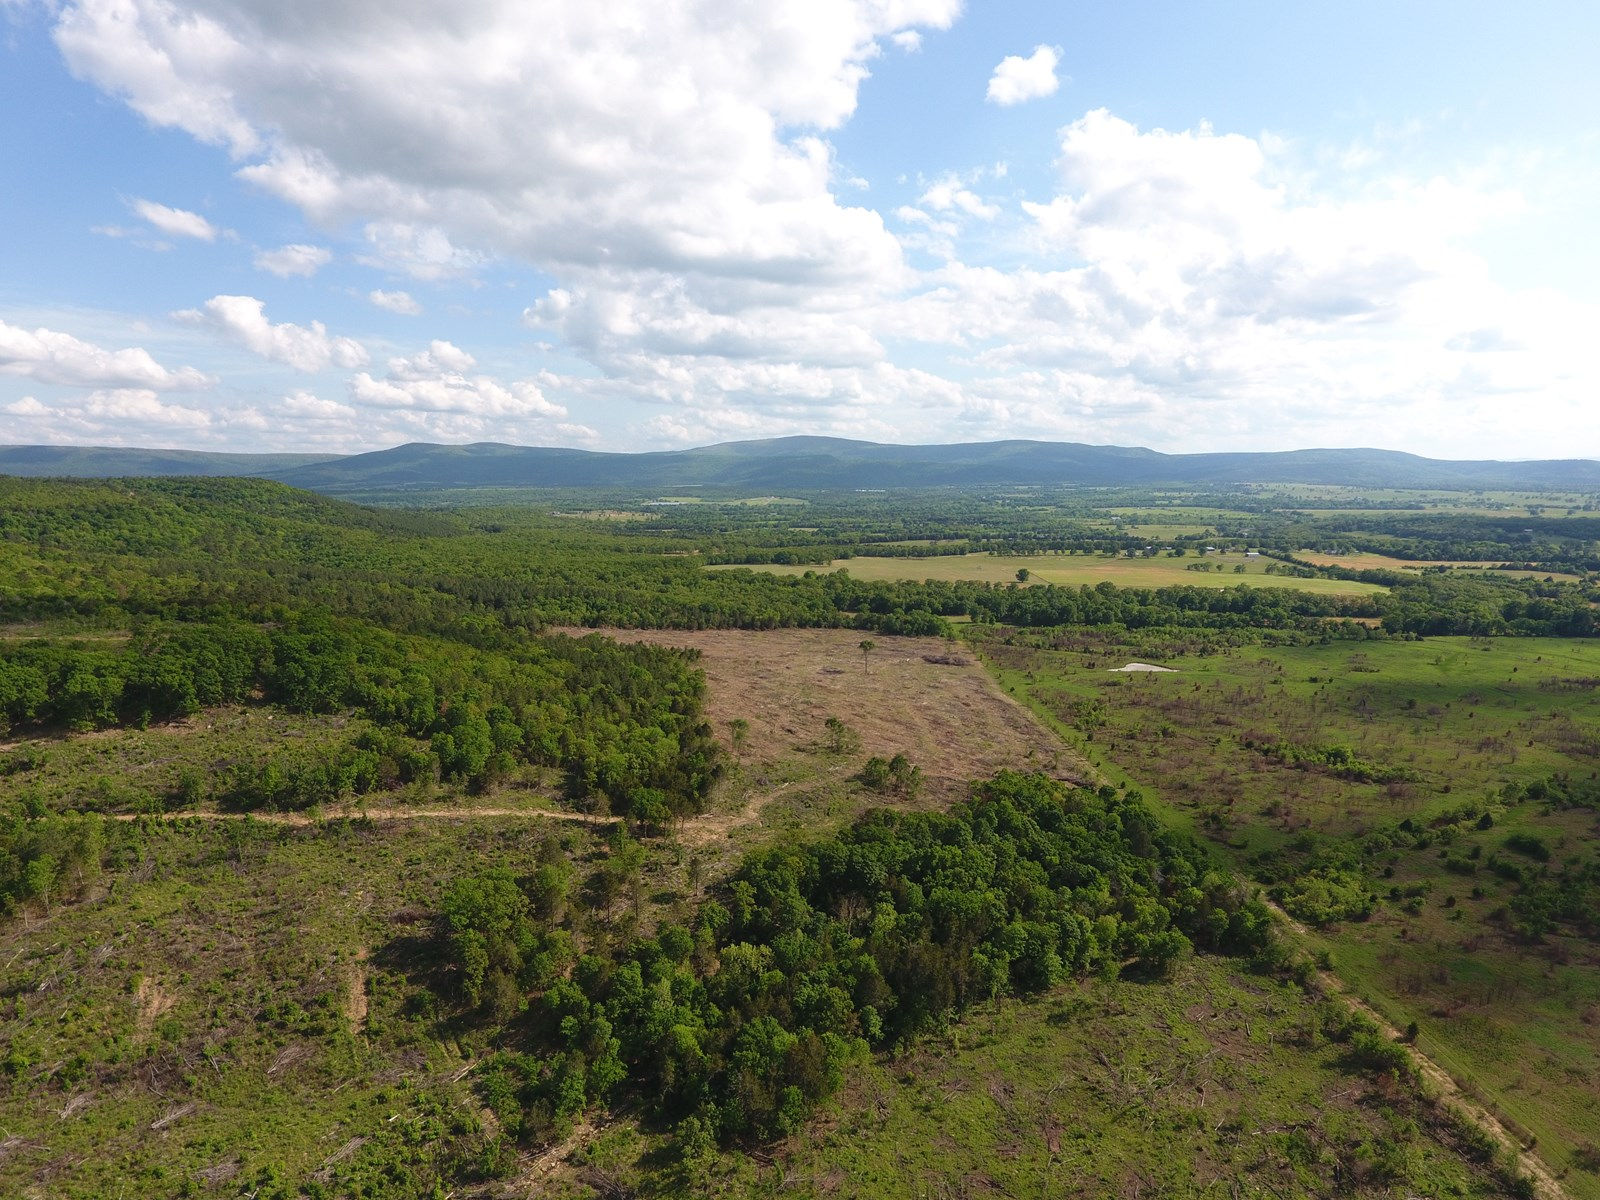 173 Acre Timber Investment and Hunting Property